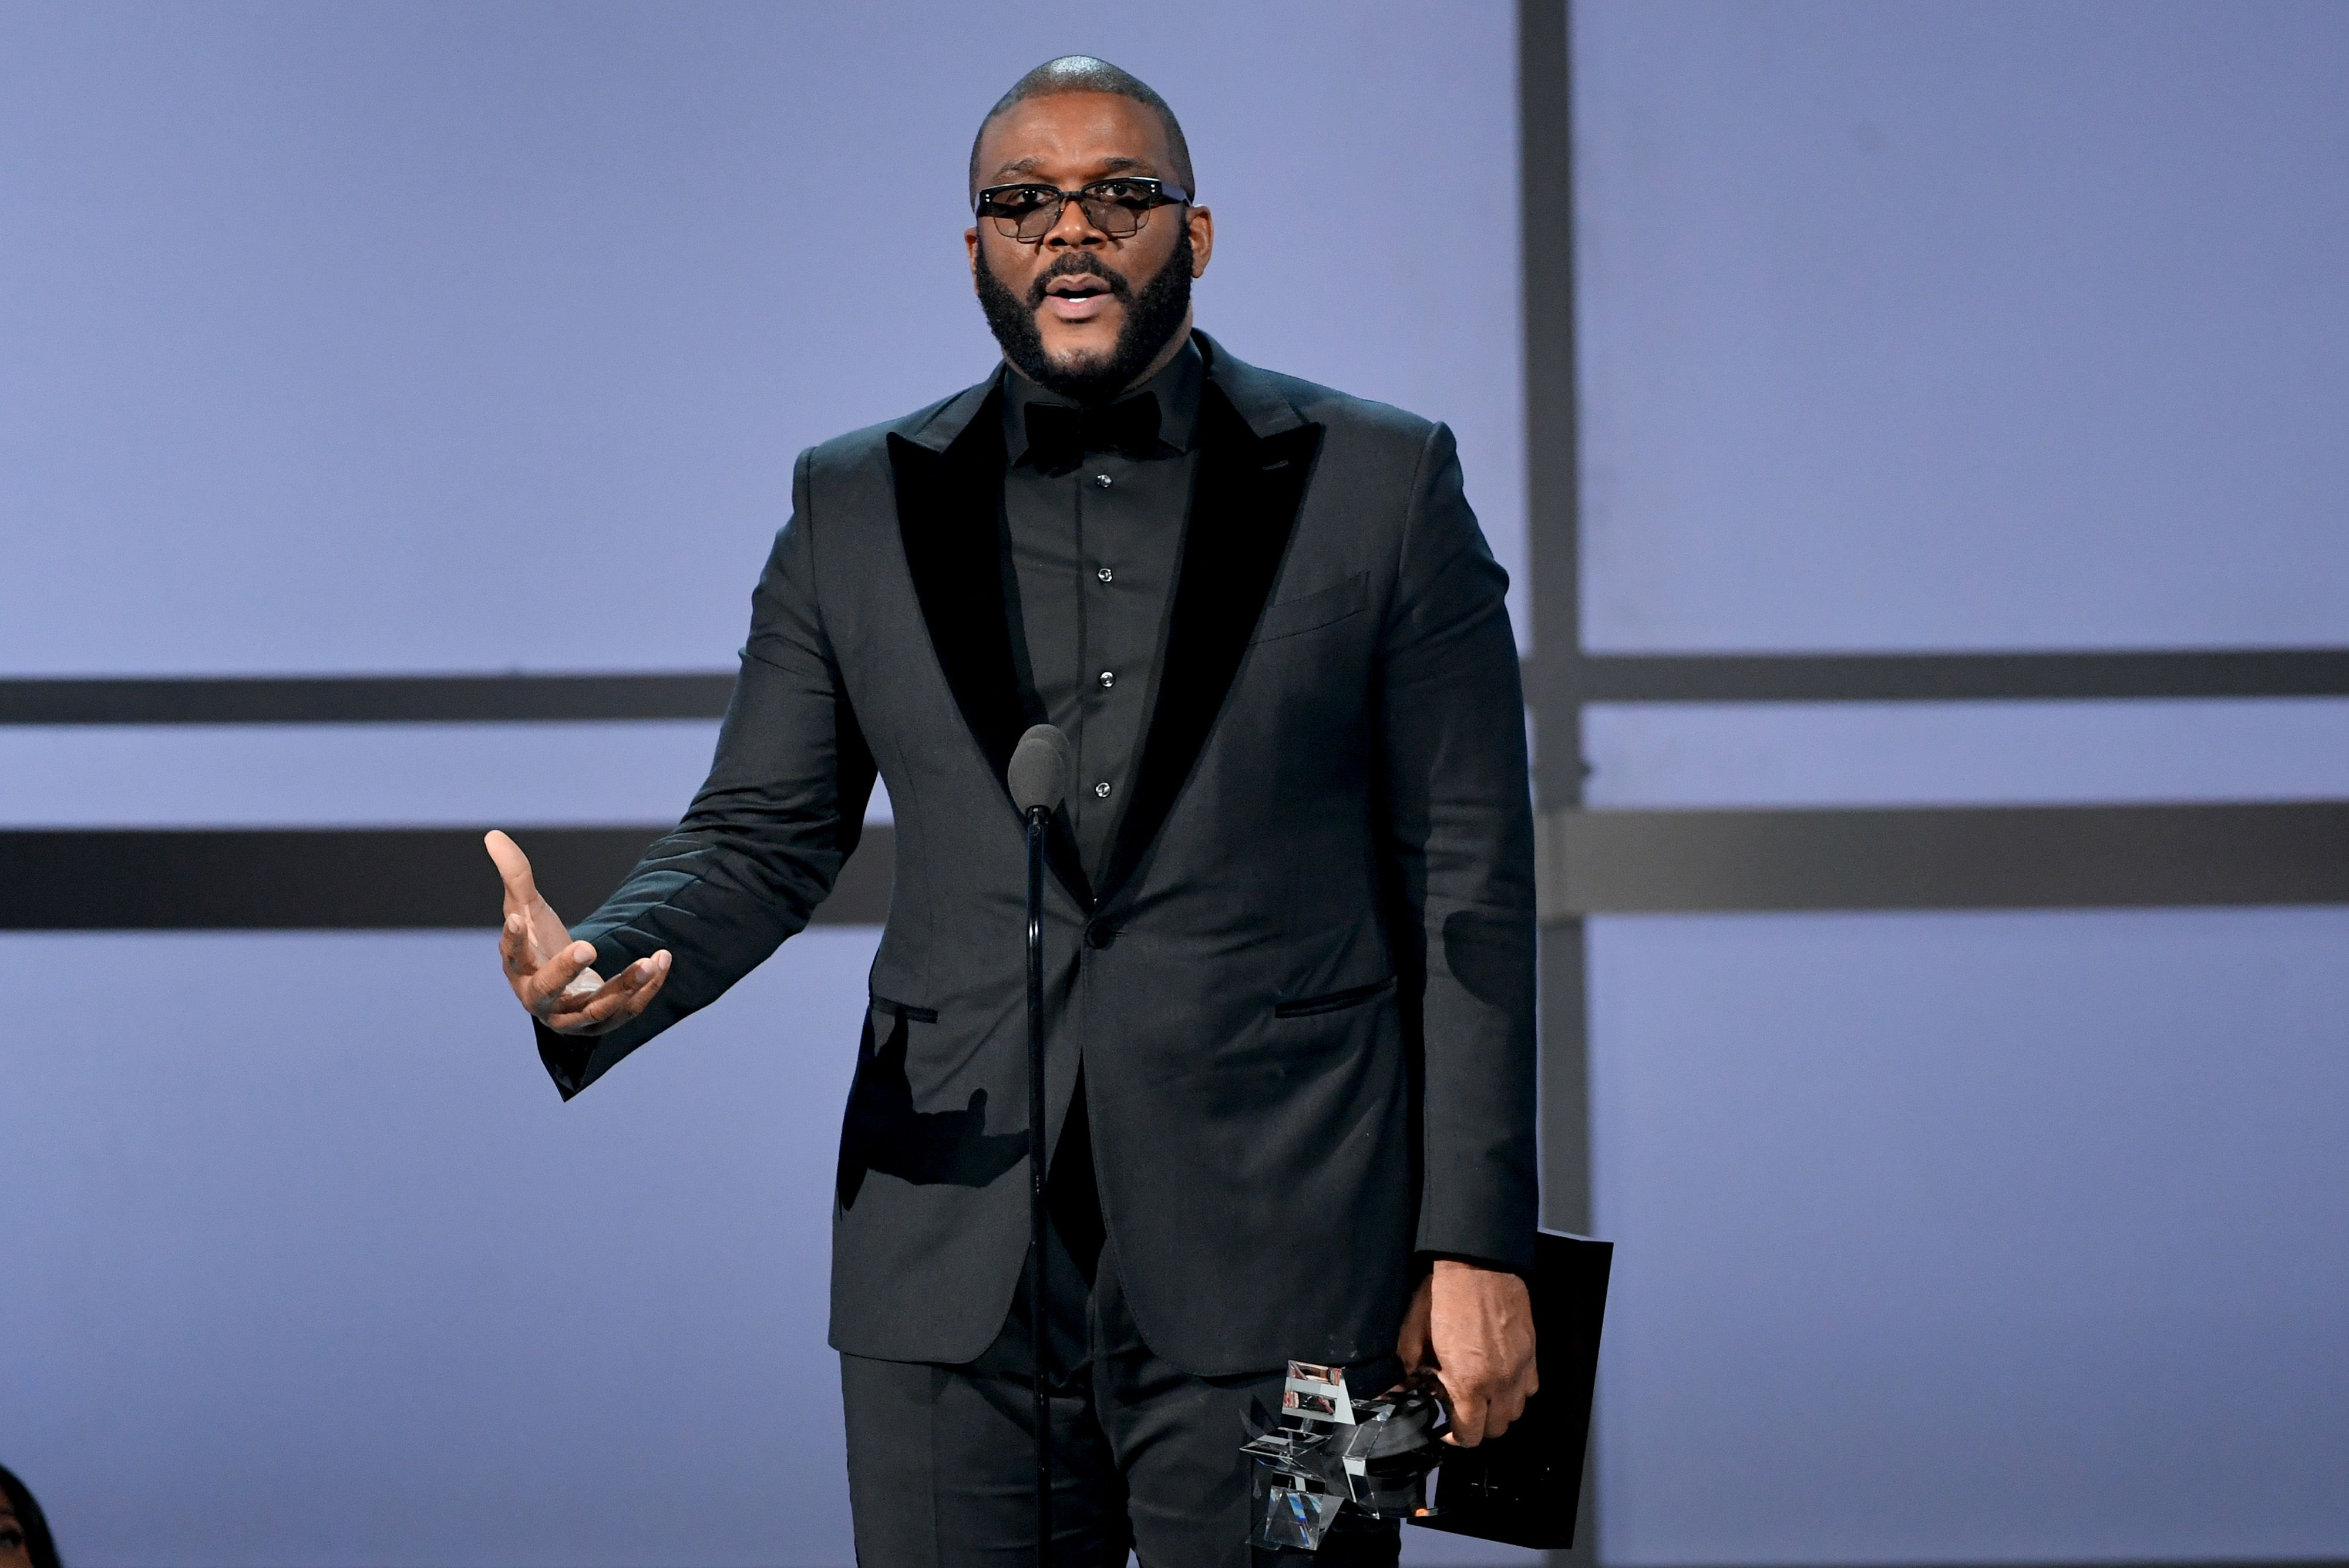 Tyler Perry Brought the House Down With His Inspiring BET Awards Speech